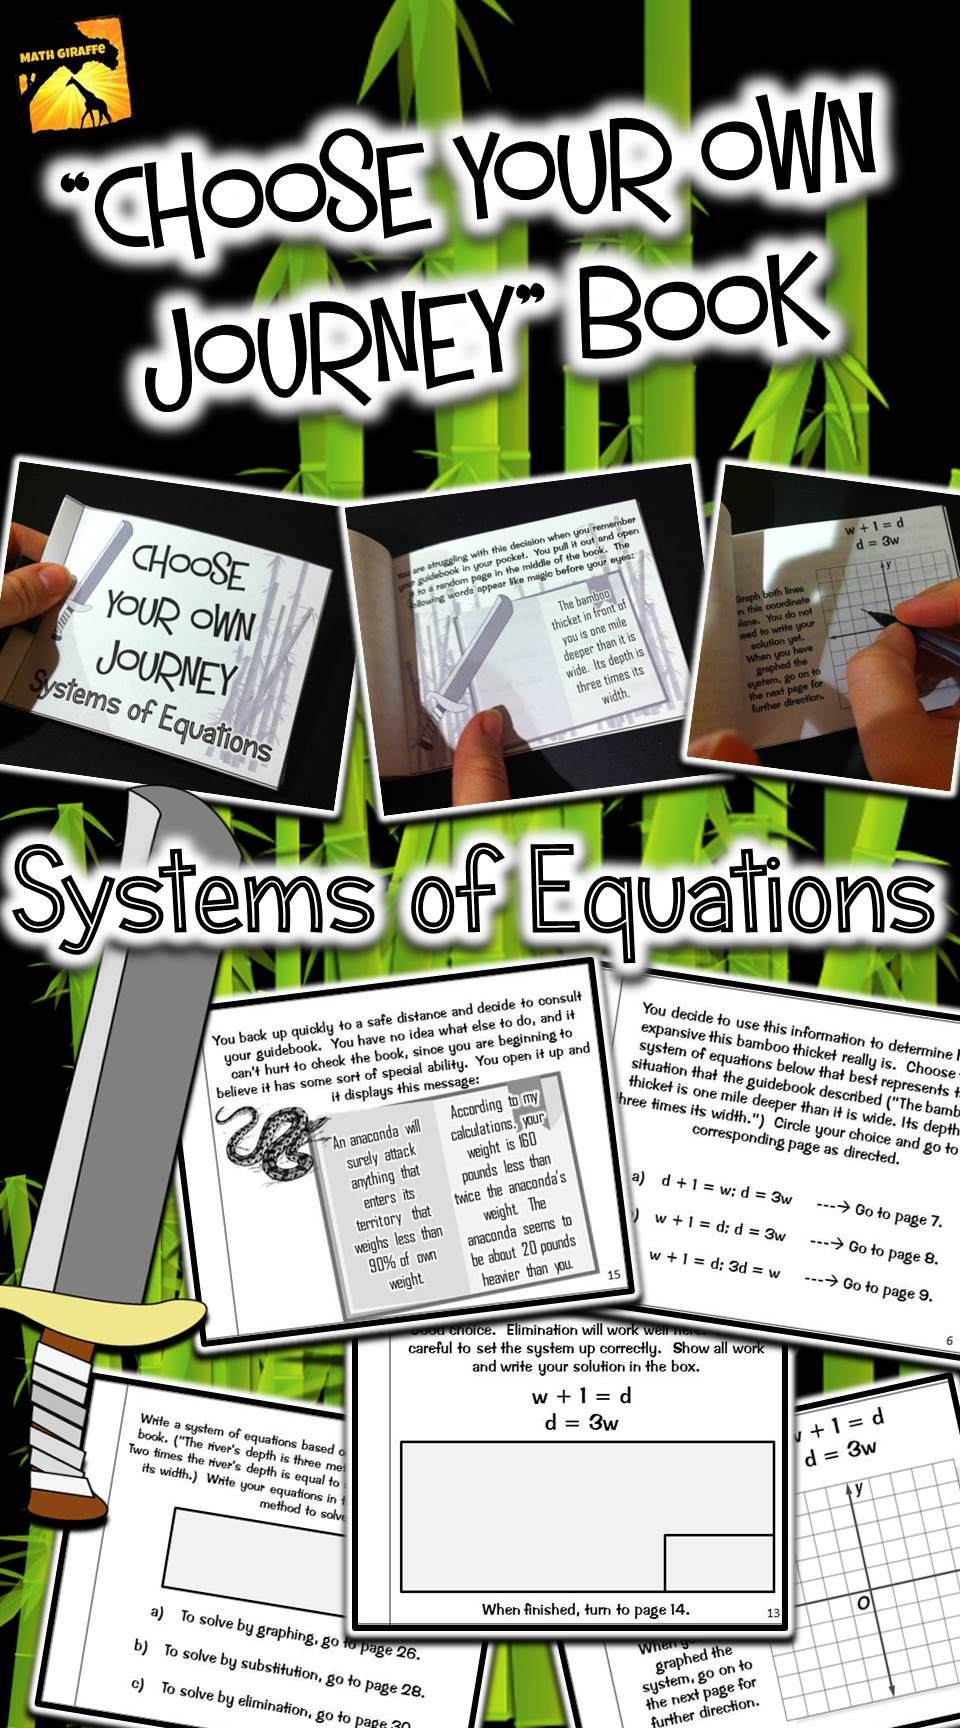 Systems Of Equations Choose Your Own Journey Book With Images